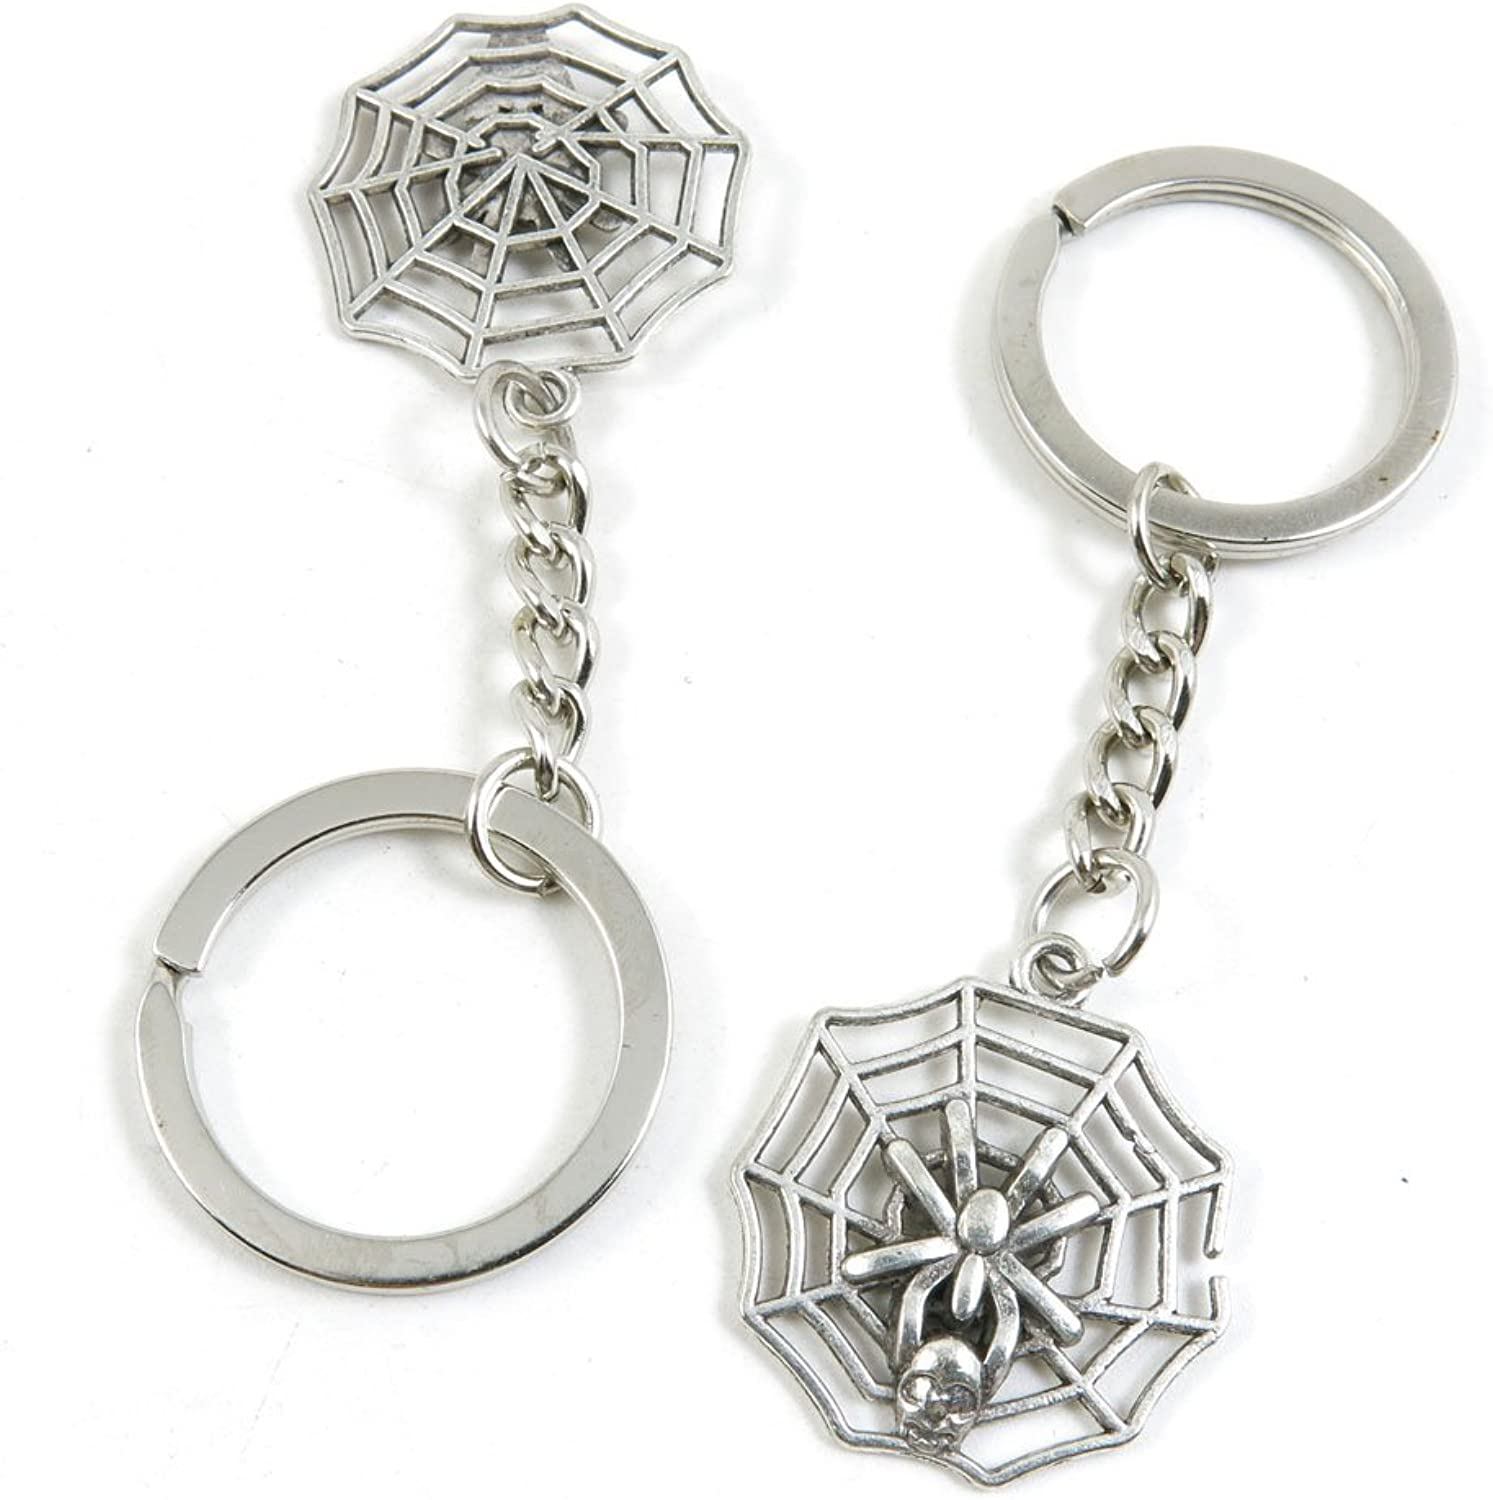 100 Pieces Keychain Keyring Door Car Key Chain Ring Tag Charms Bulk Supply Jewelry Making Clasp Findings F8IK3M Spider Net Cobweb